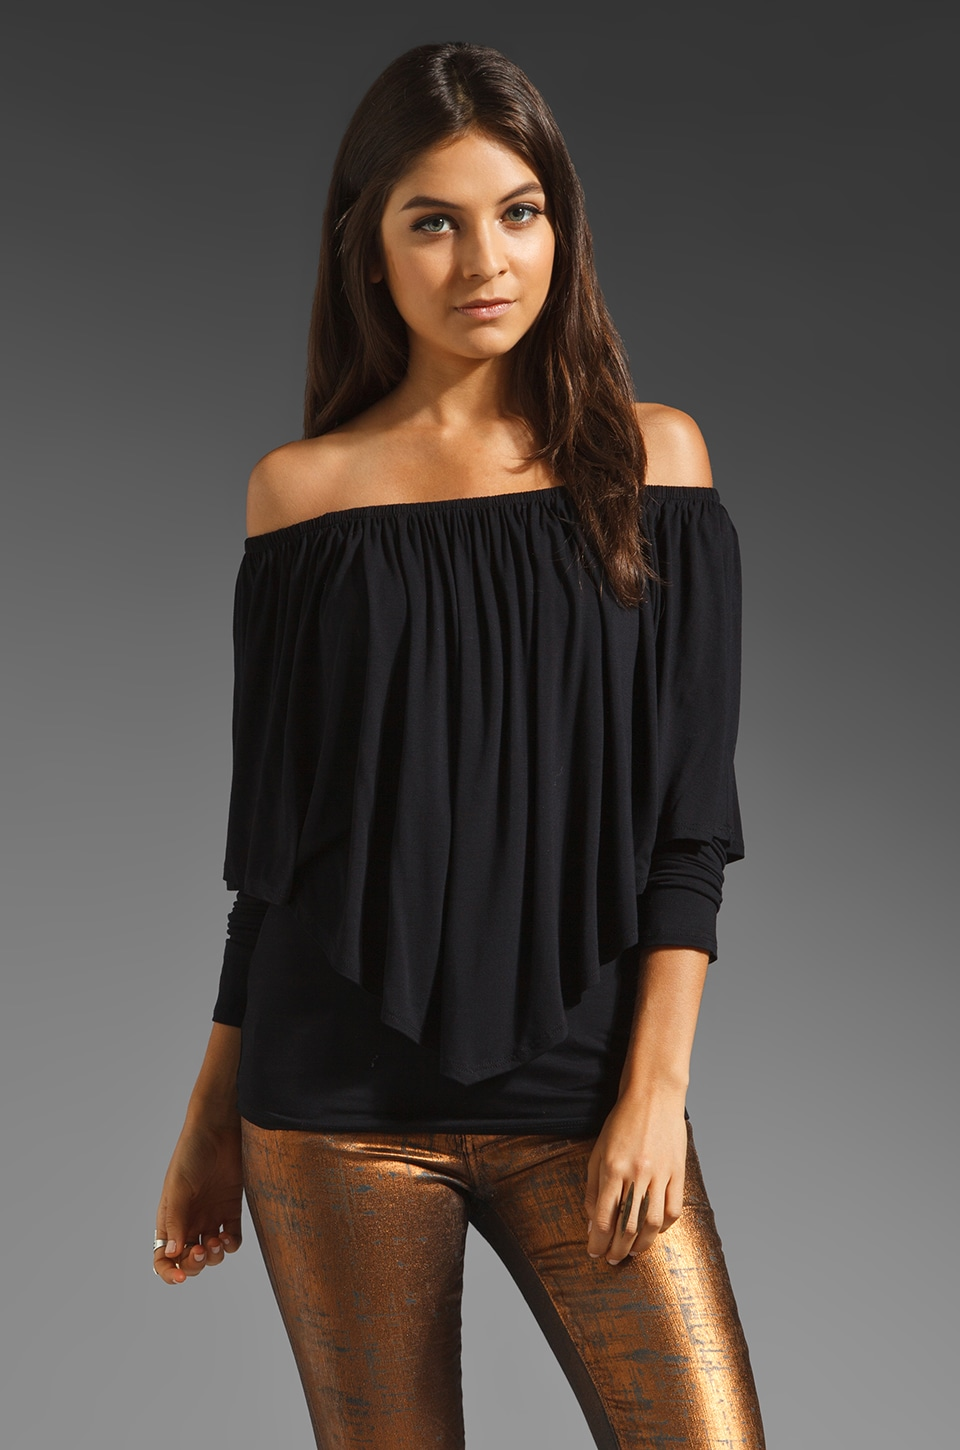 James & Joy Mina Long Sleeve Convertible Top in Black